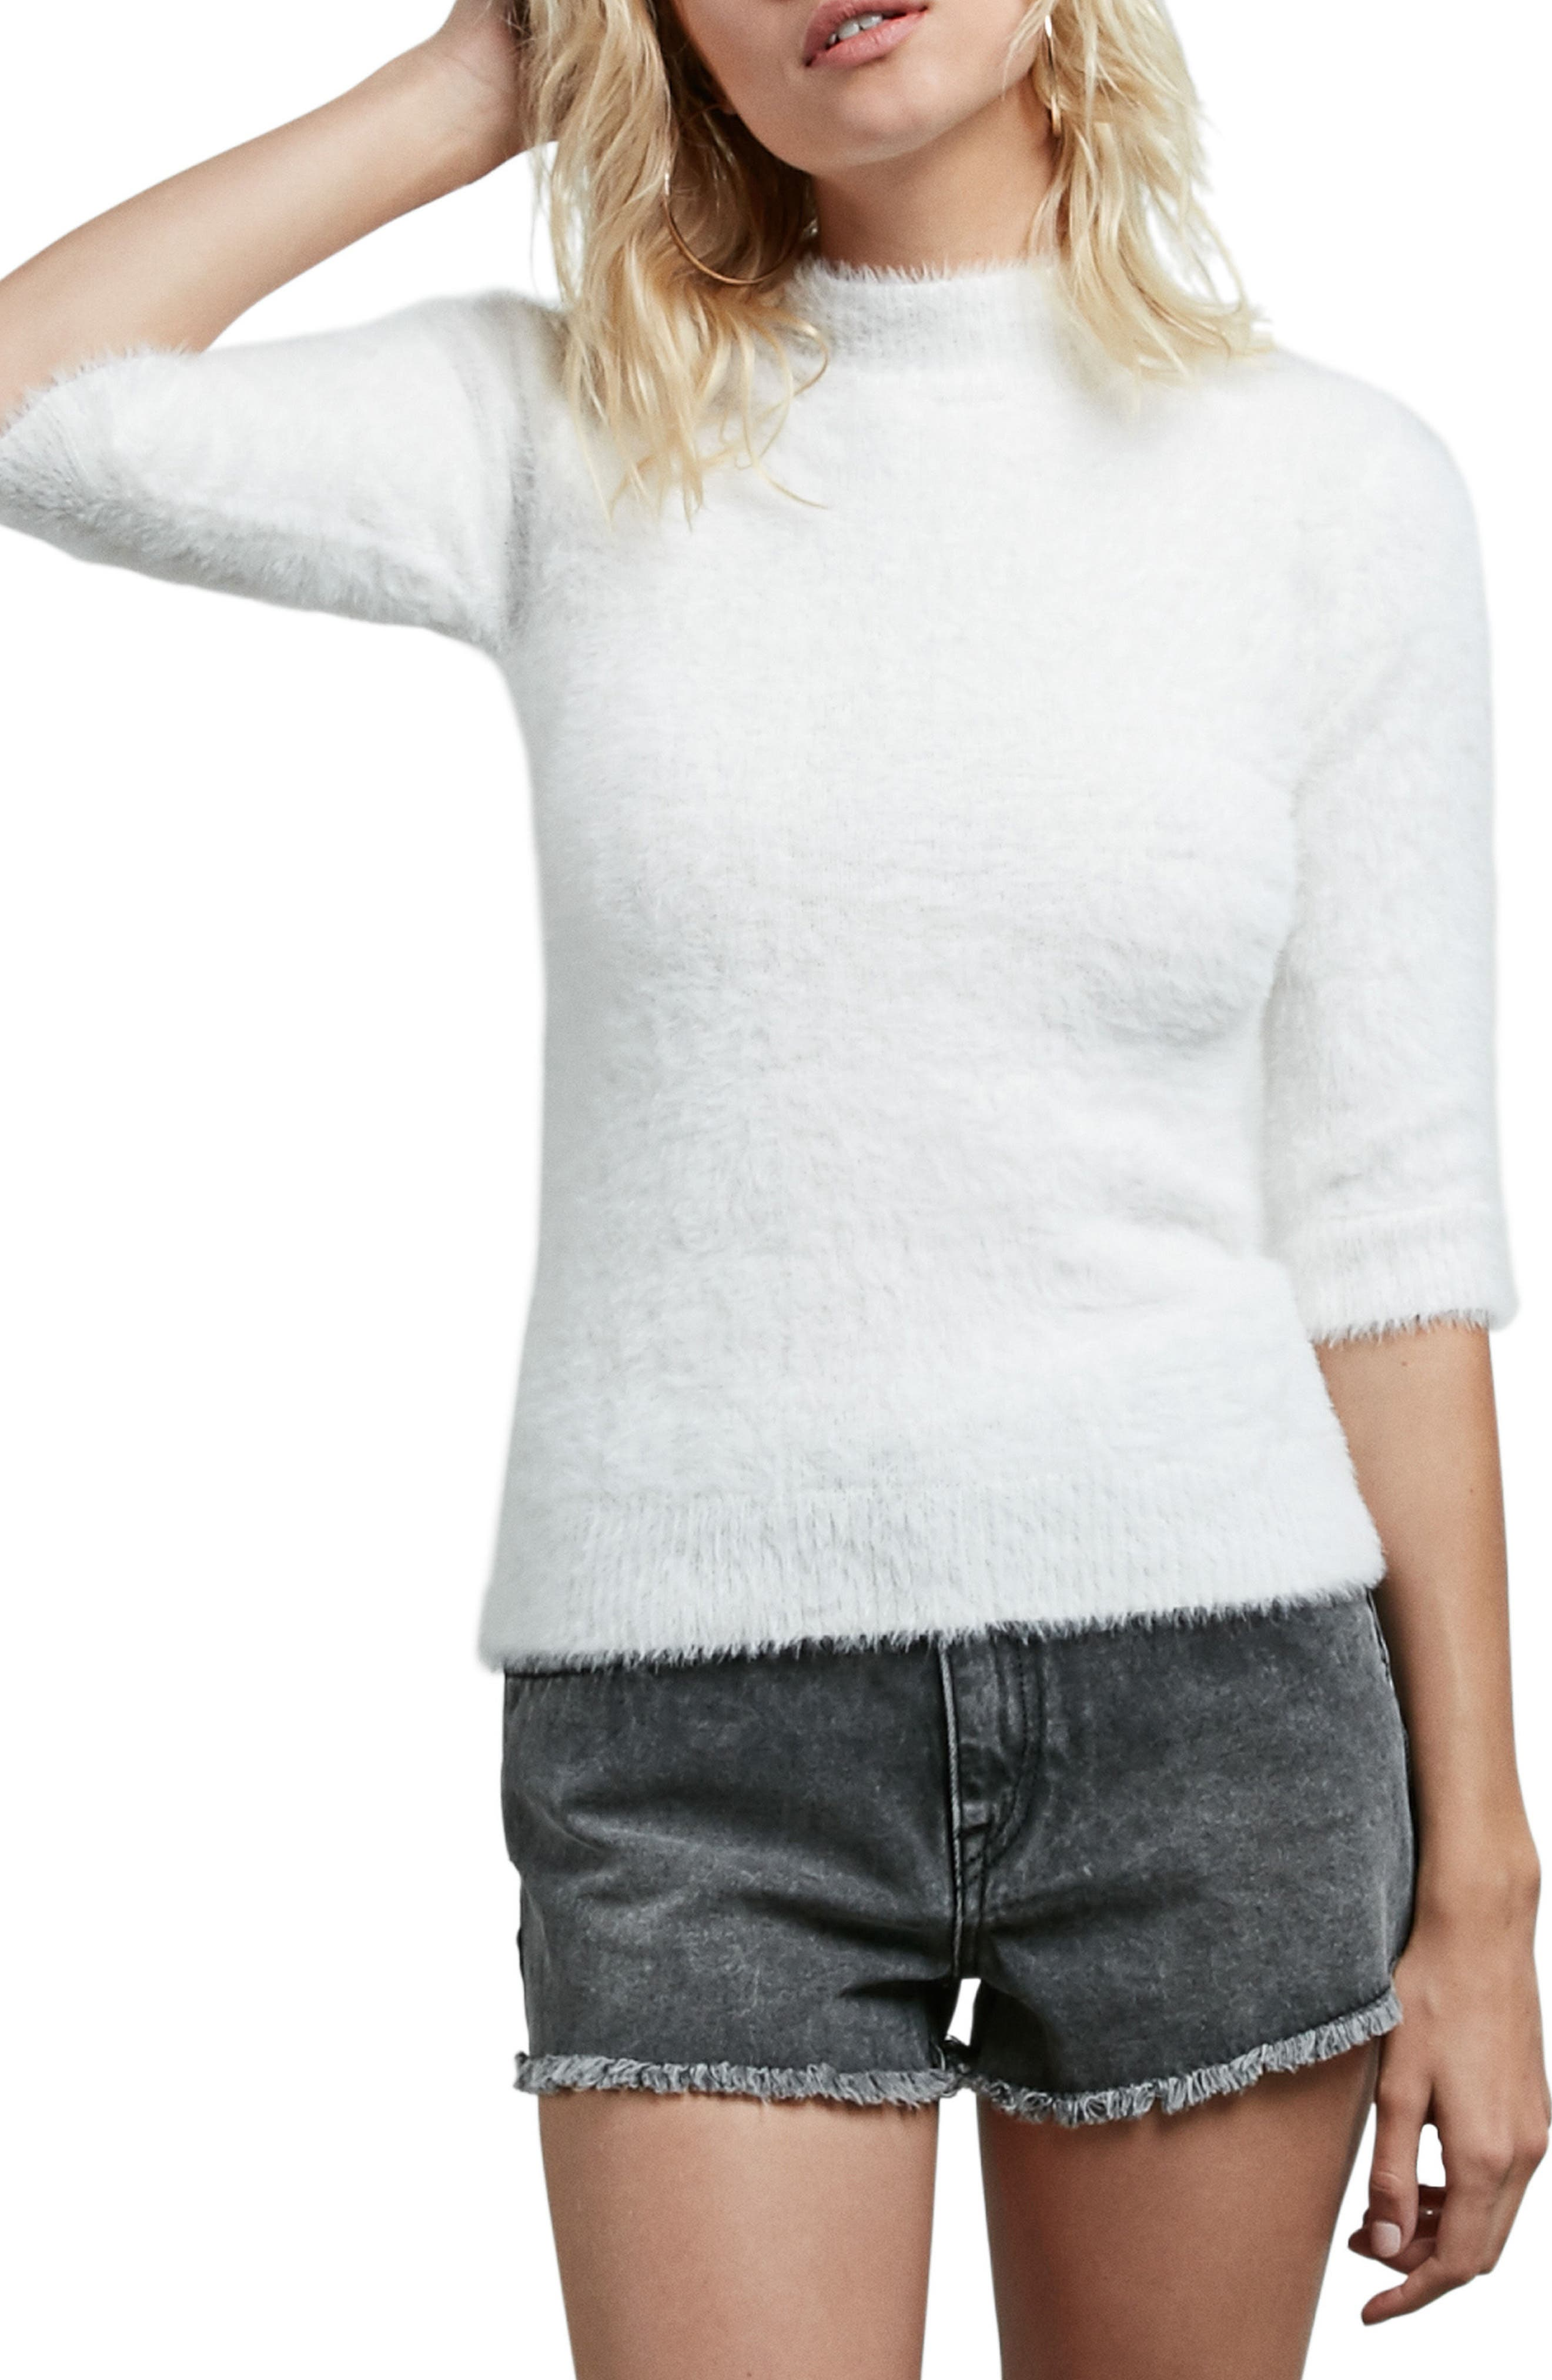 Bunney Riot Sweater,                         Main,                         color, Star Wht